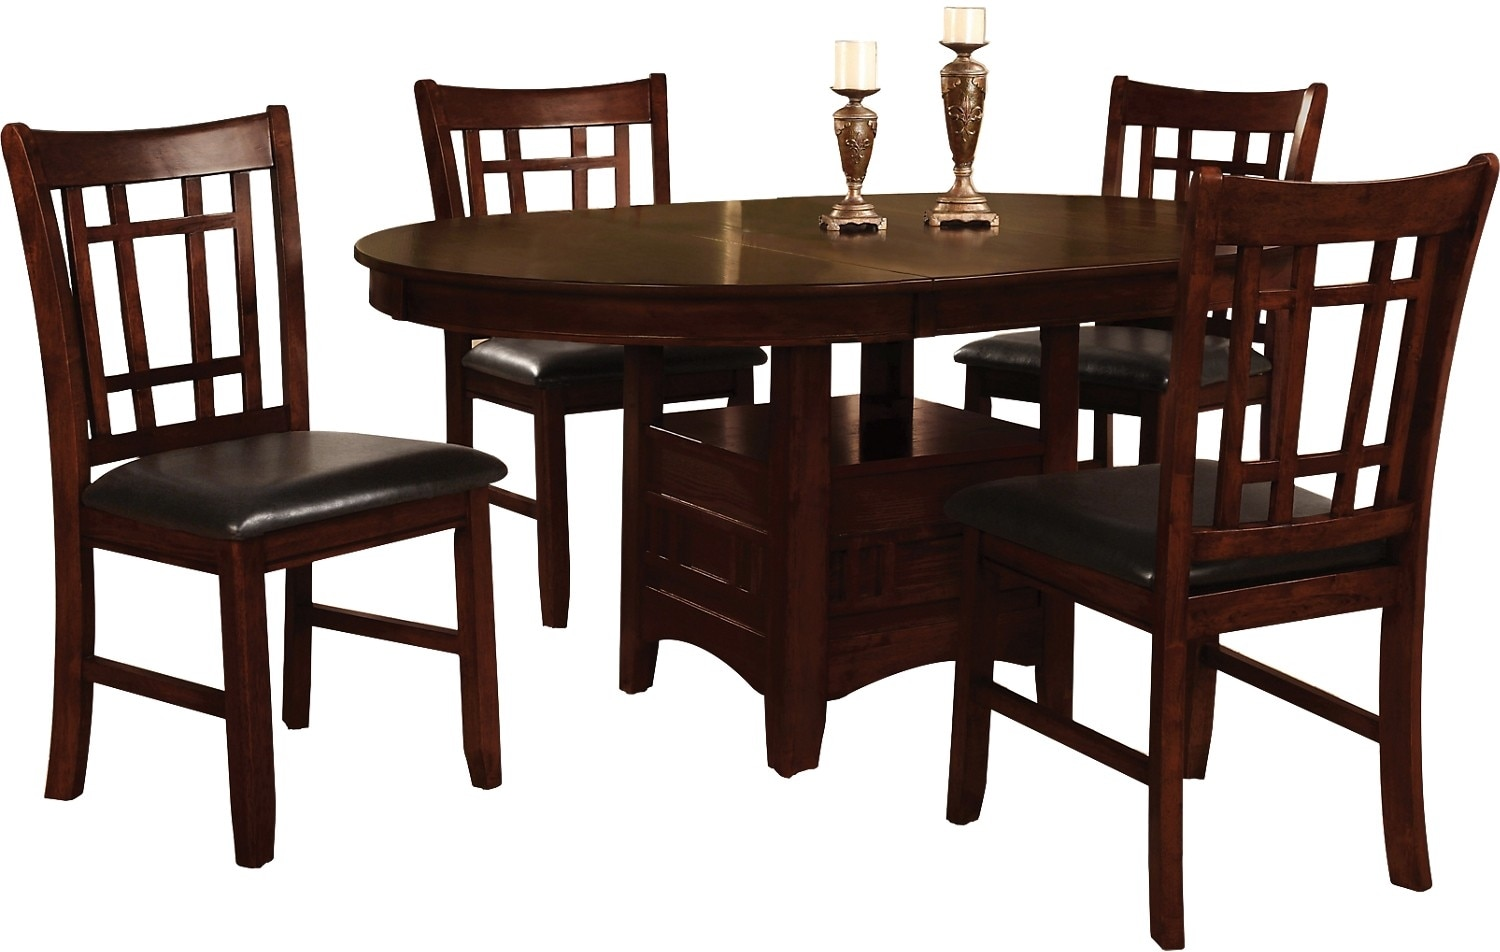 Dining Room Furniture - Dalton 5 Piece Chocolate Dining Package